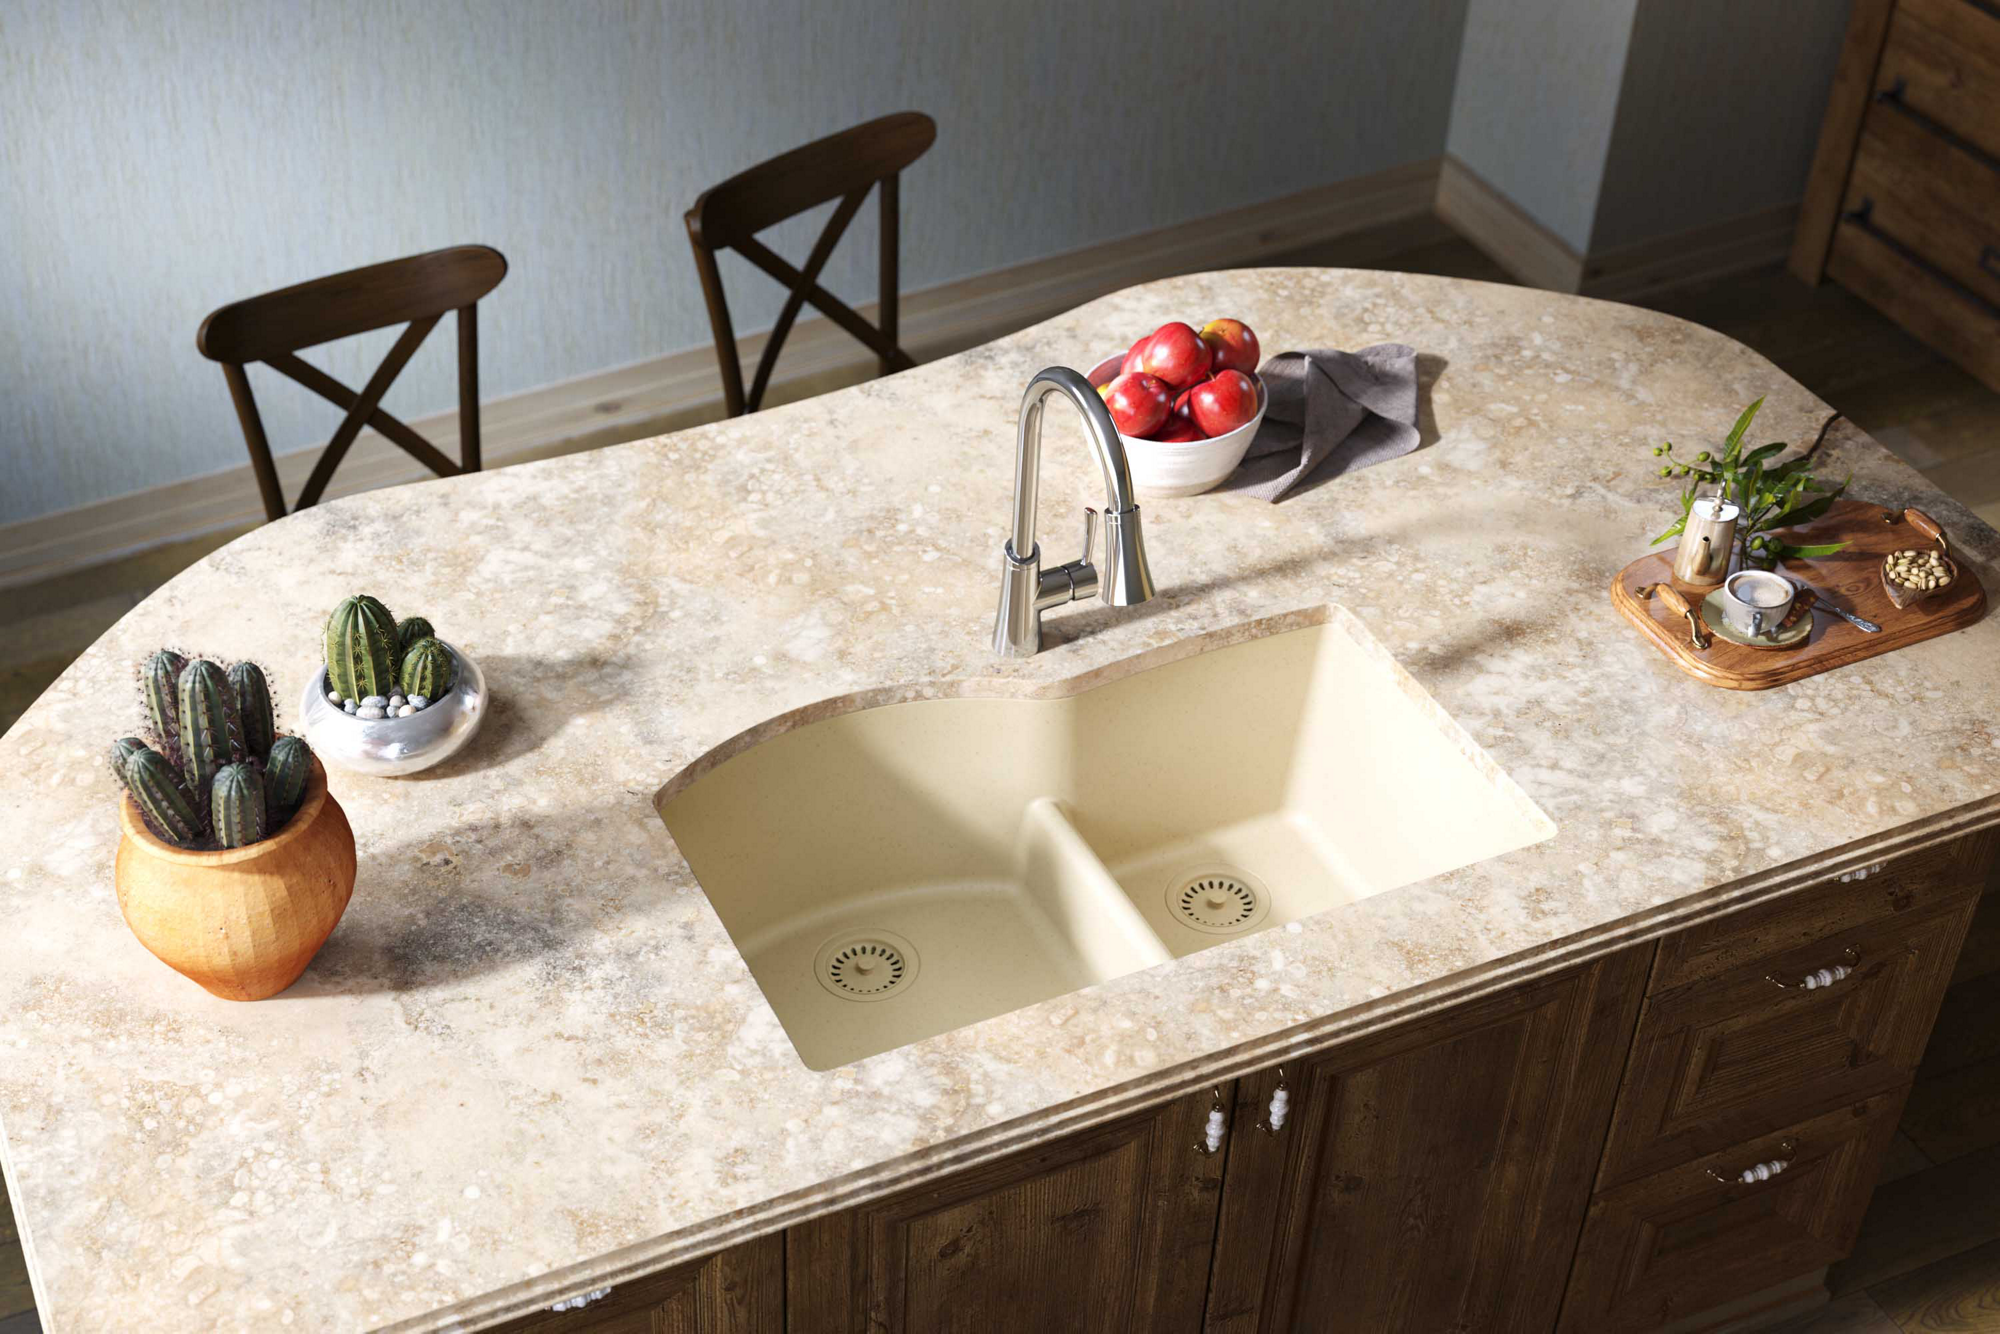 Elkay Quartz Classic 33in x 22in x 10in Offset 60/40 Double Bowl Undermount Sink with Aqua Divide Sand